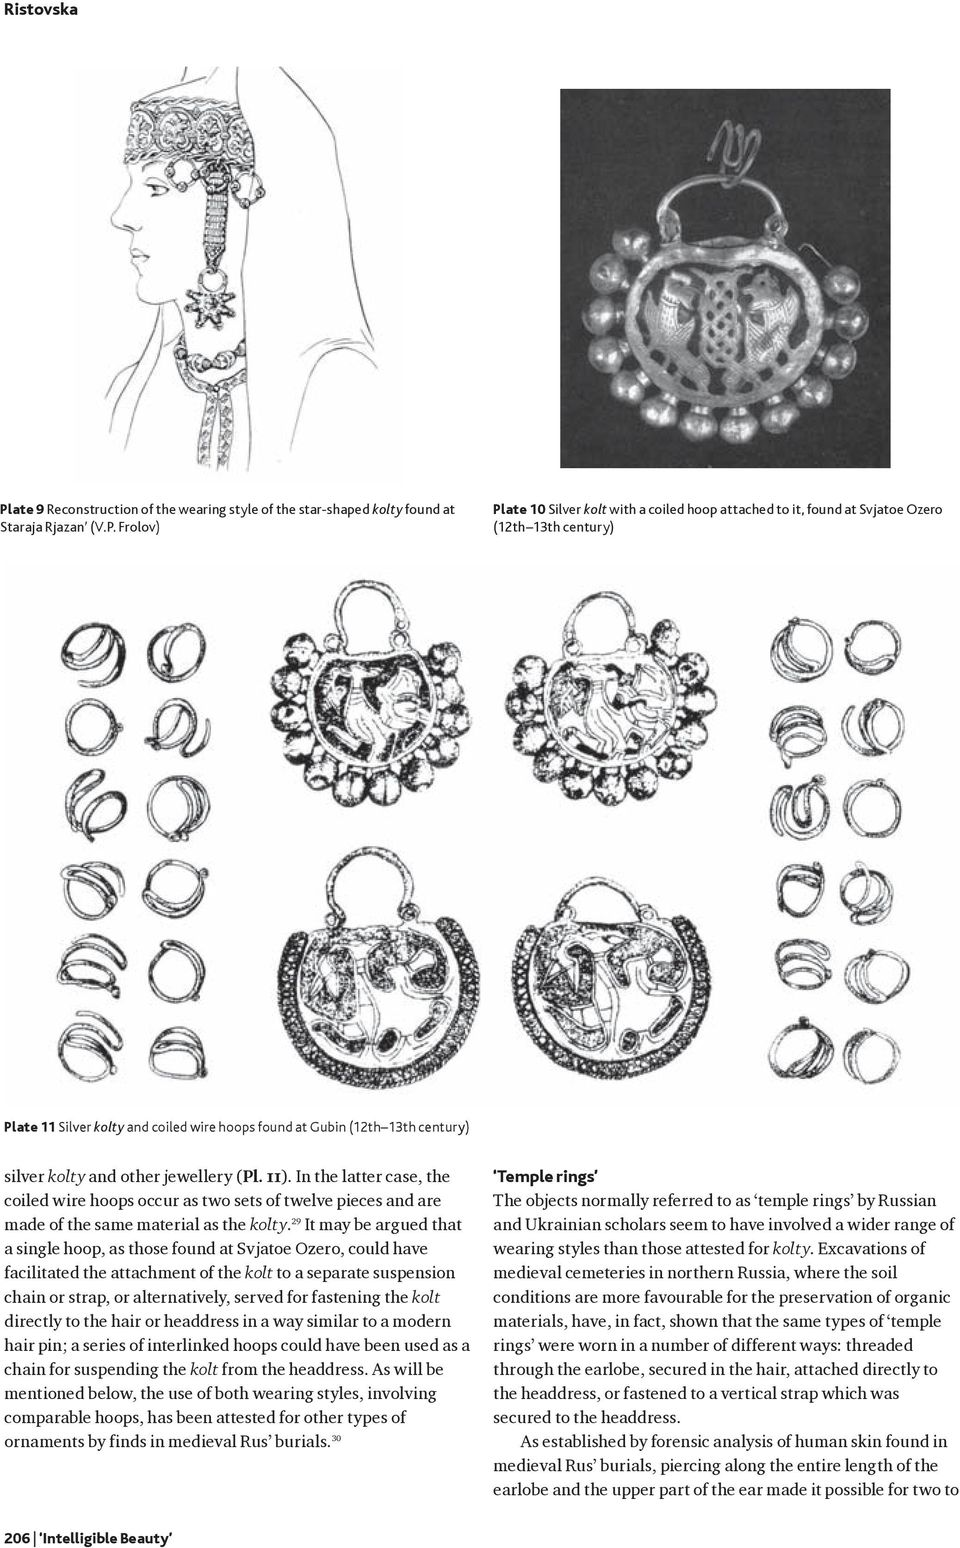 Frolov) Plate 10 Silver kolt with a coiled hoop attached to it, found at Svjatoe Ozero (12th 13th century) Plate 11 Silver kolty and coiled wire hoops found at Gubin (12th 13th century) silver kolty